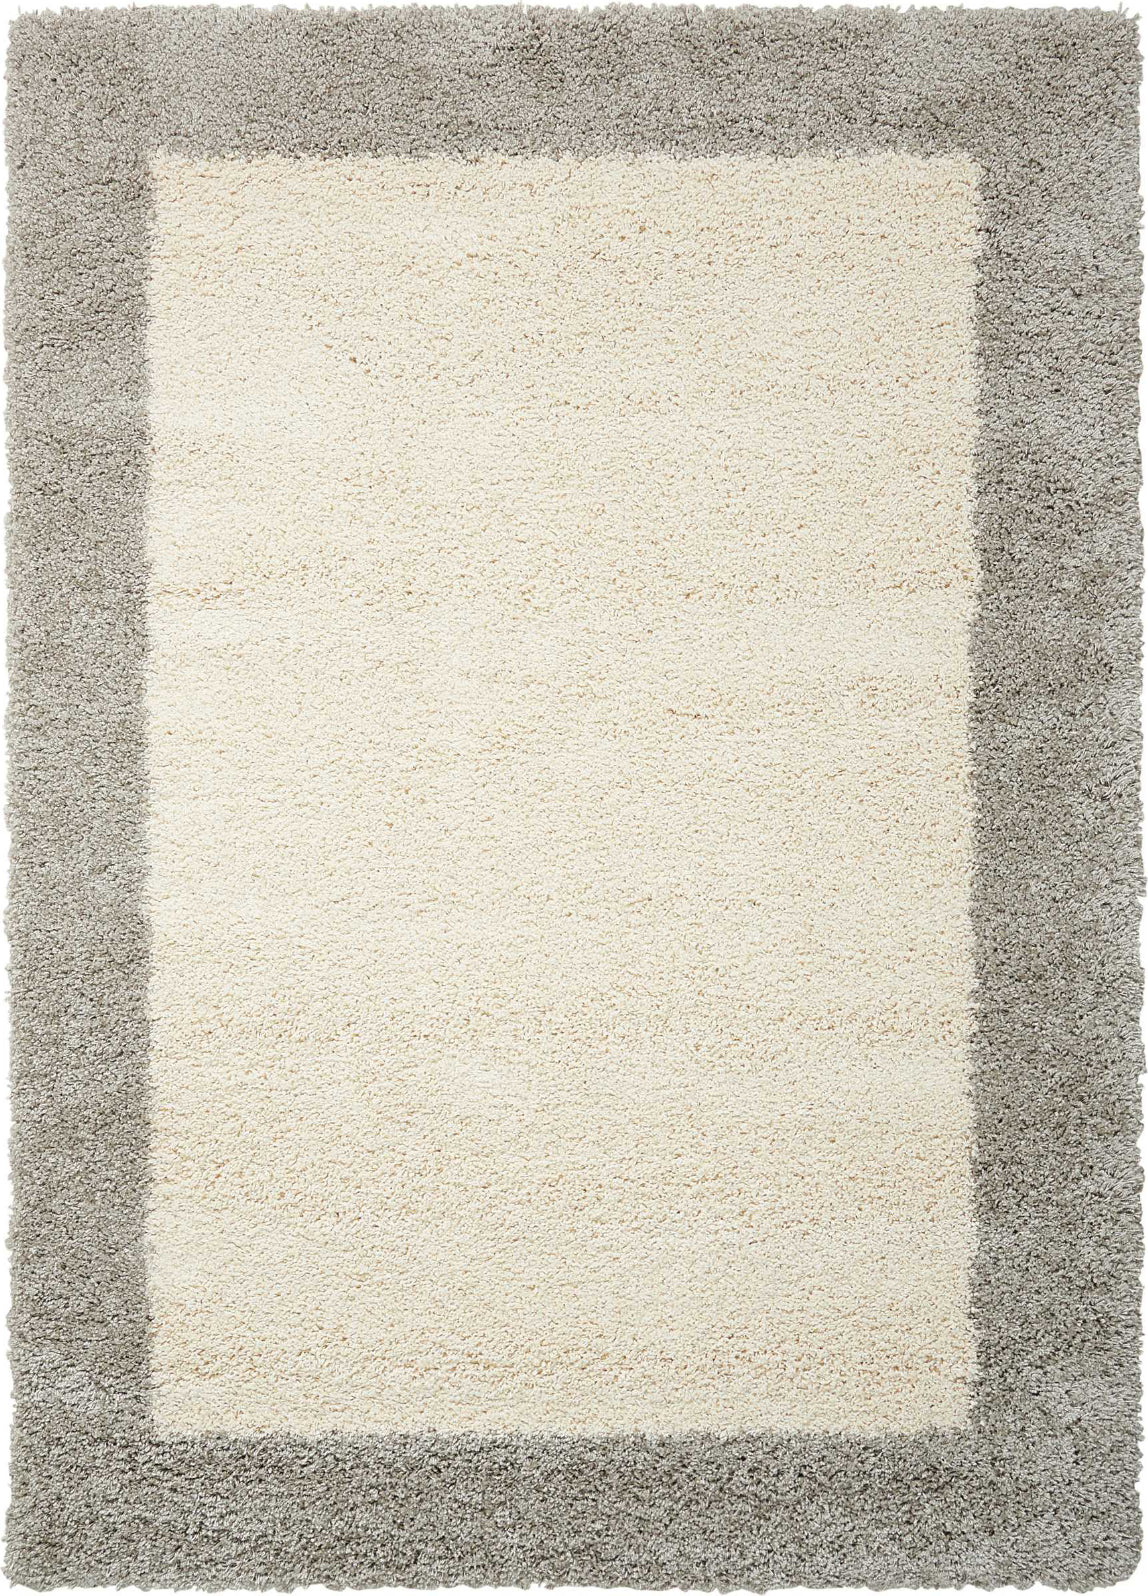 Nourison Amore AMOR5 Ivory/Silver Area Rug main image